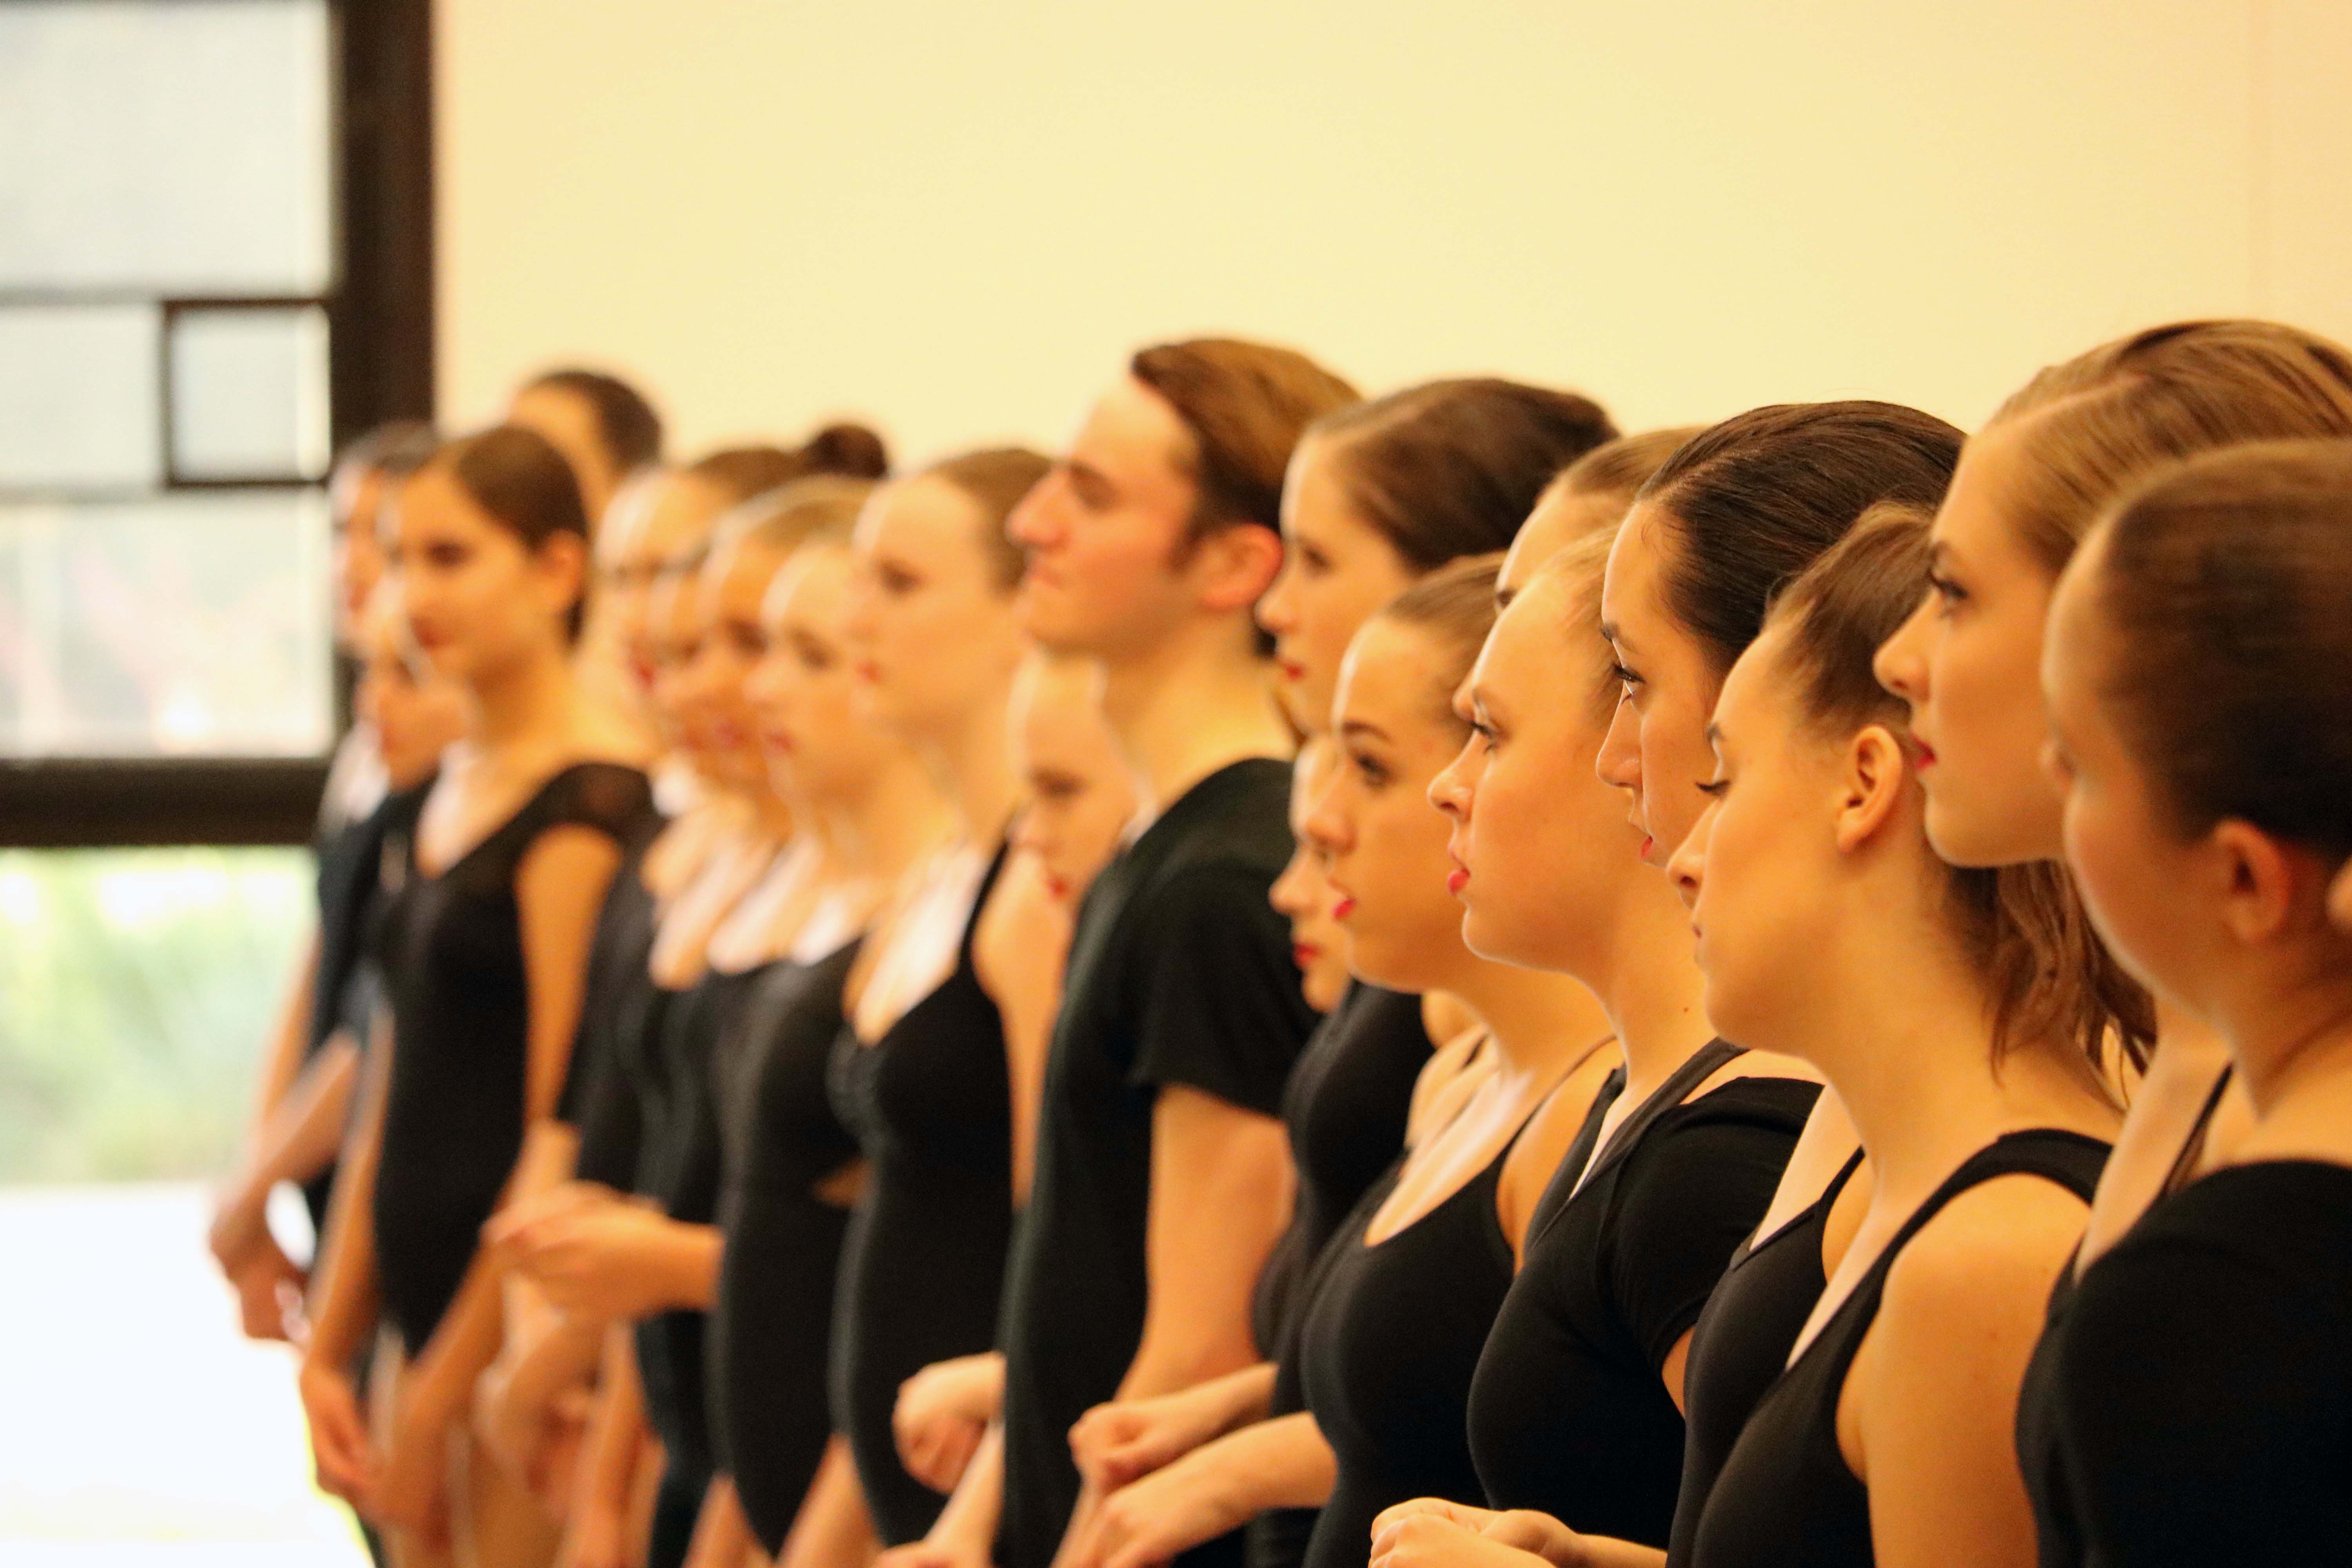 Broadway bound students listen to an instructor